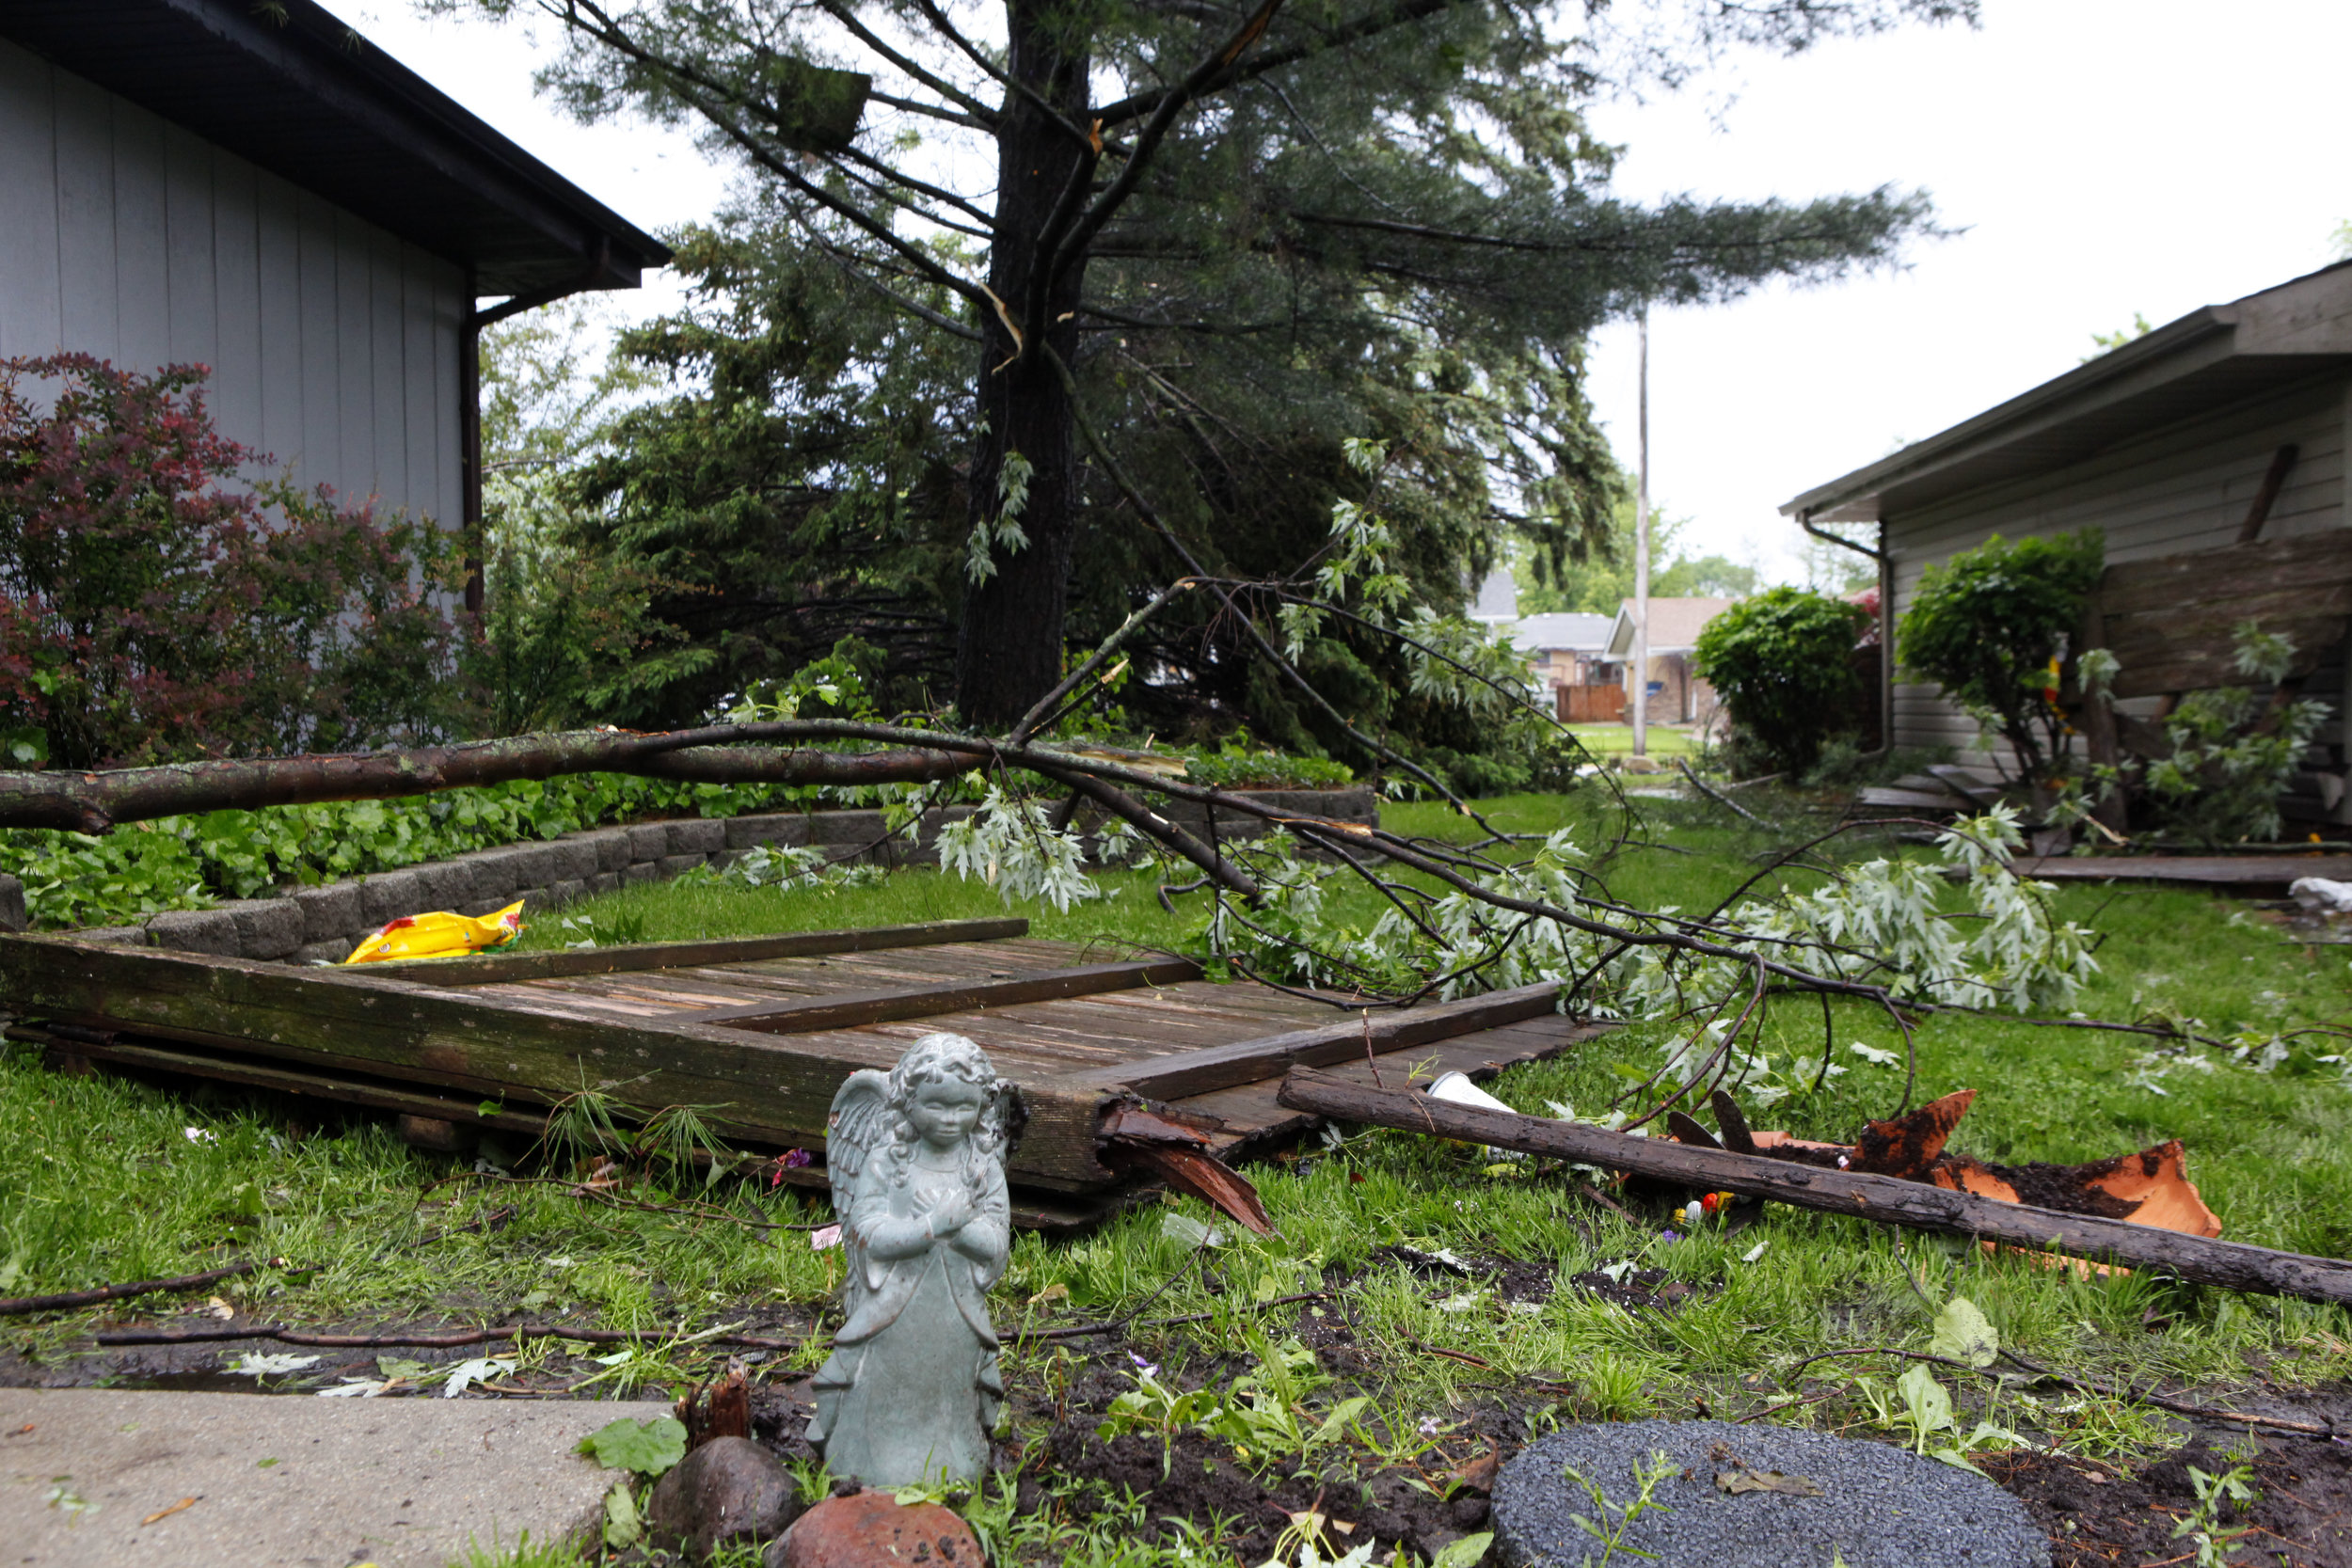 An angel lawn ornament is left standing amid damage to the home of Chris and Judy Artim caused by a tornado in Dyer.